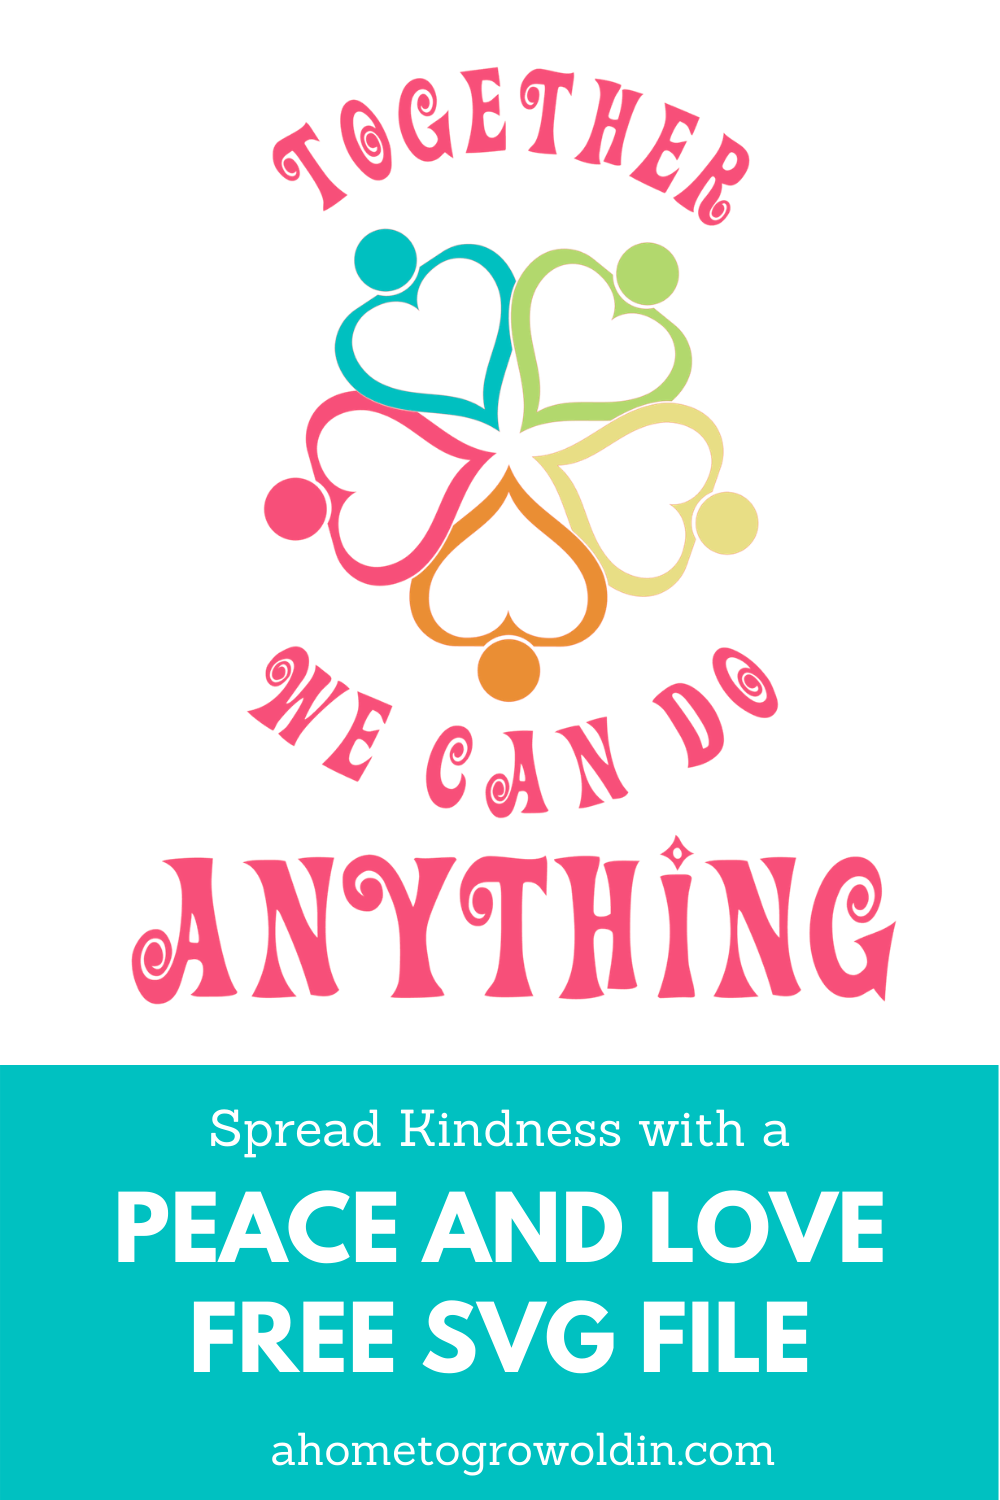 together we can do anything free love svg file